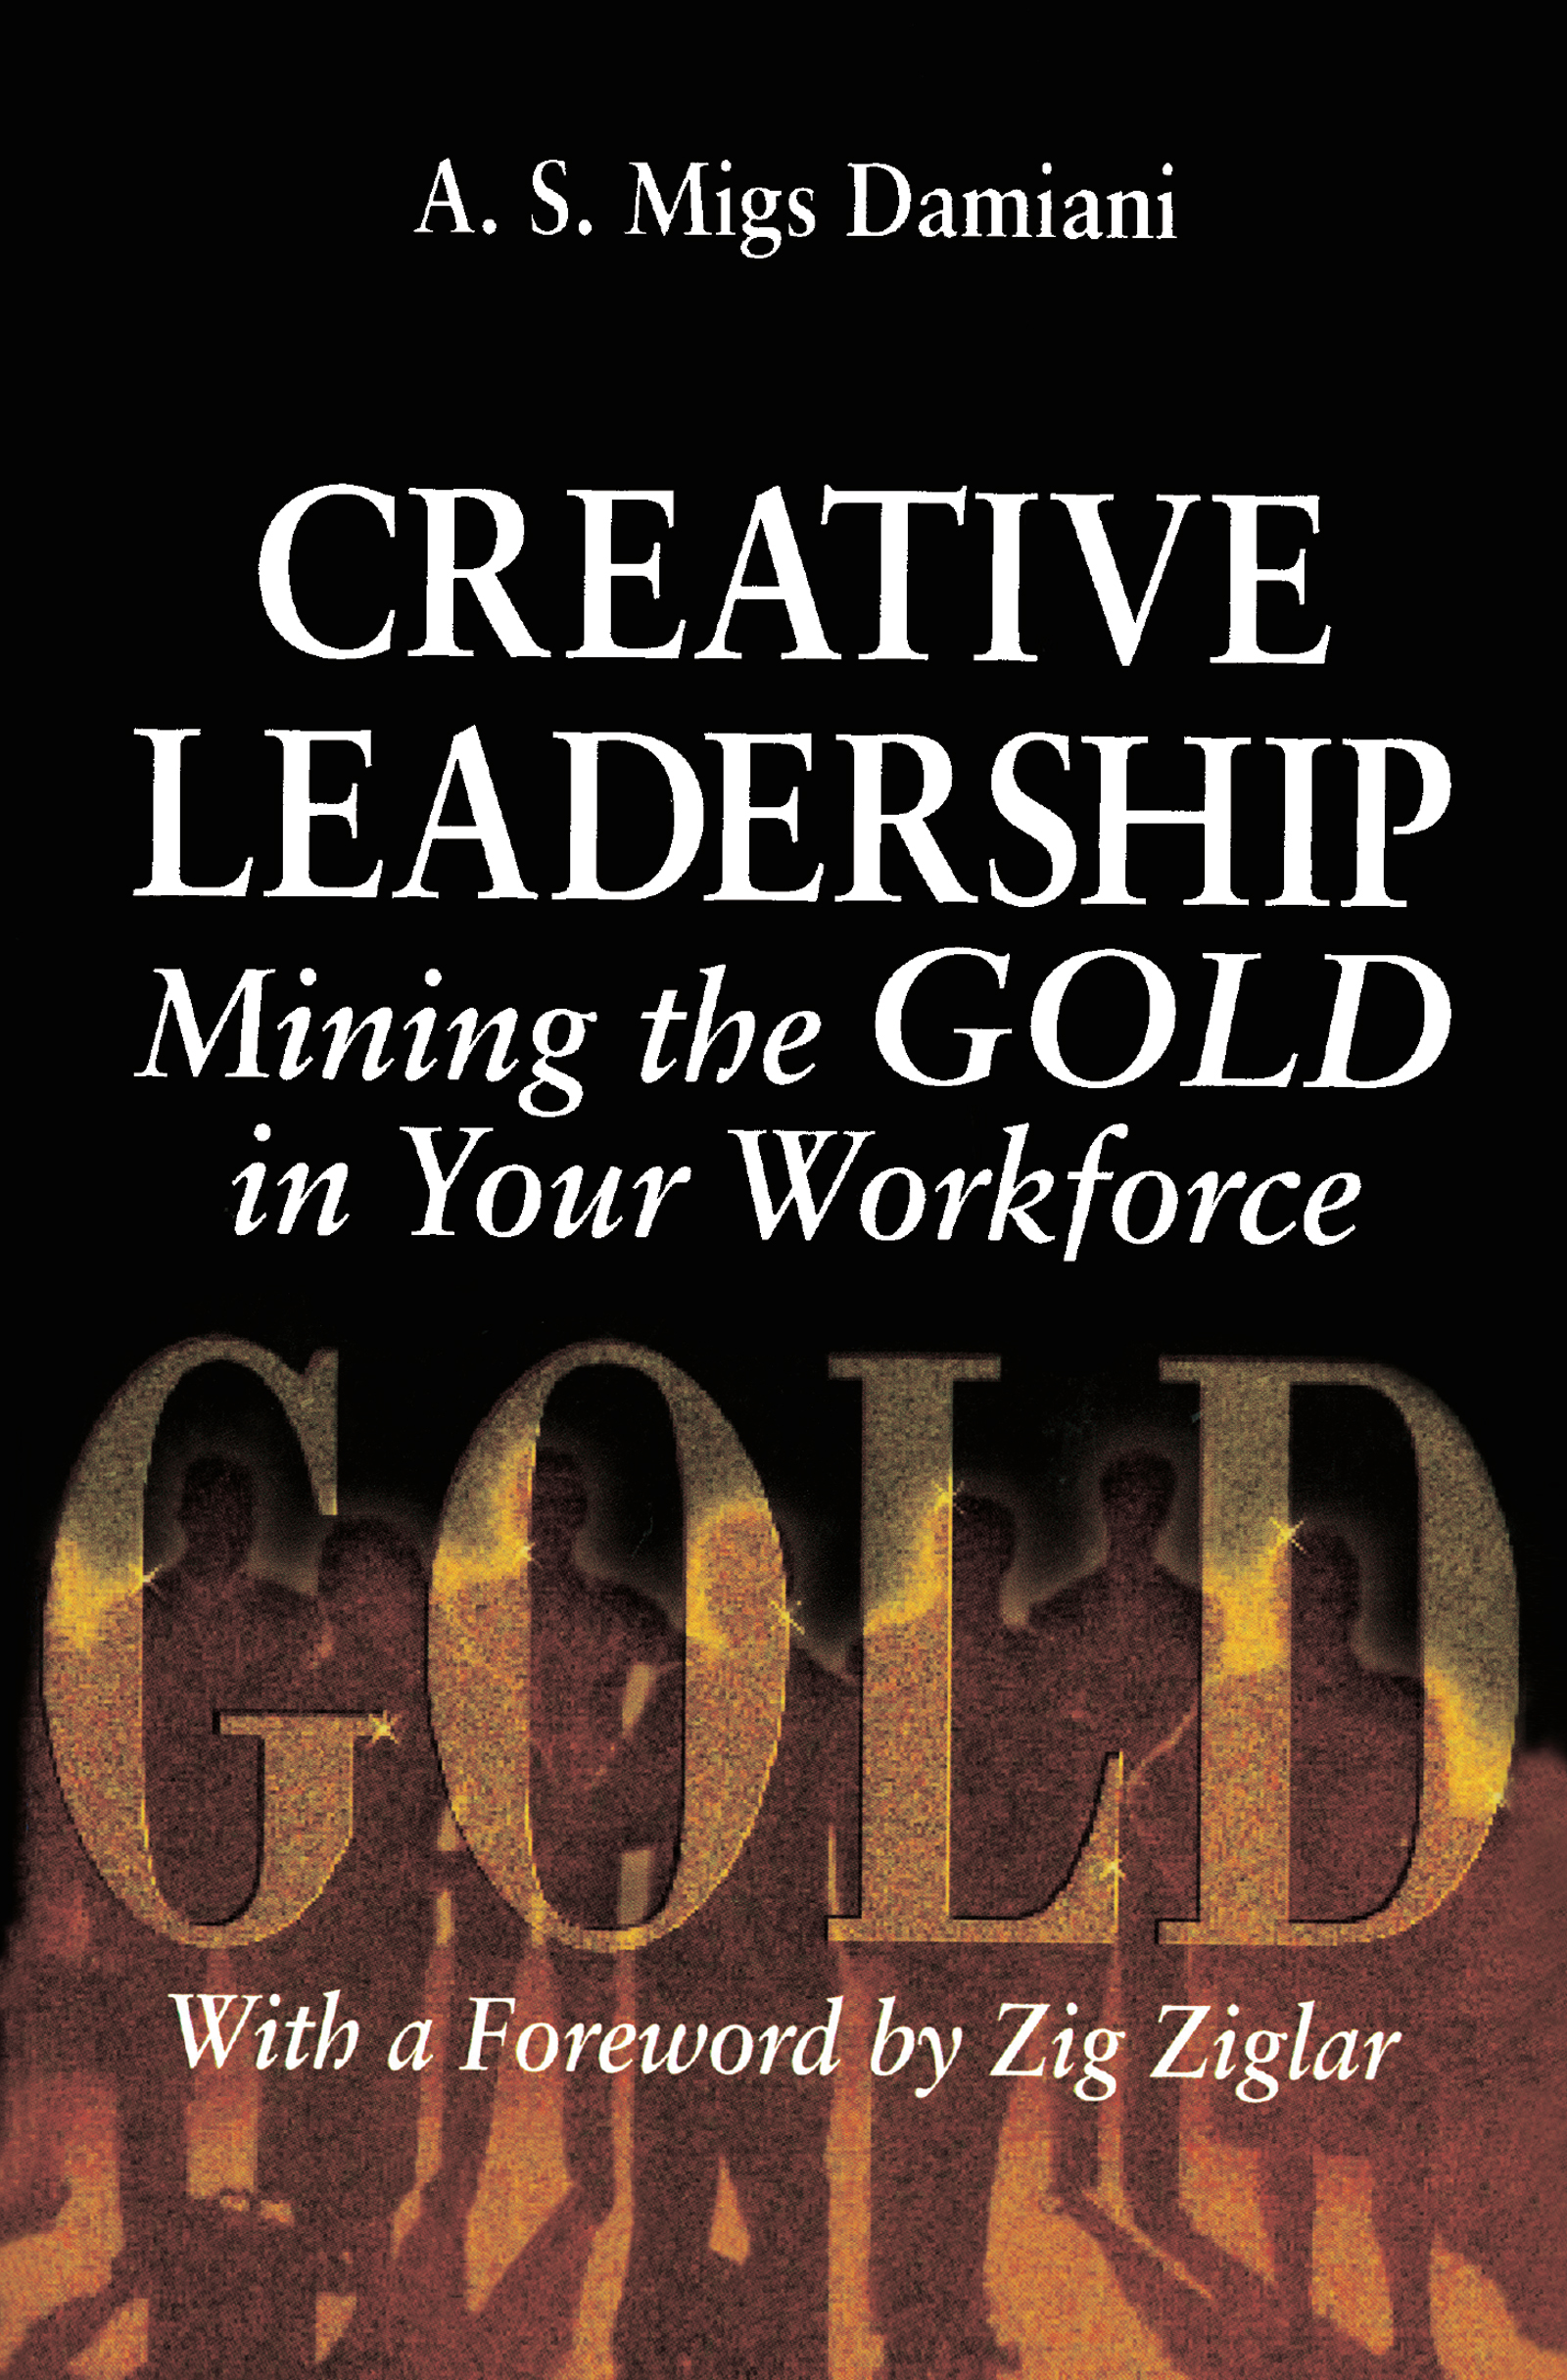 CREATIVE LEADERSHIP Mining the GOLD in Your Workforce